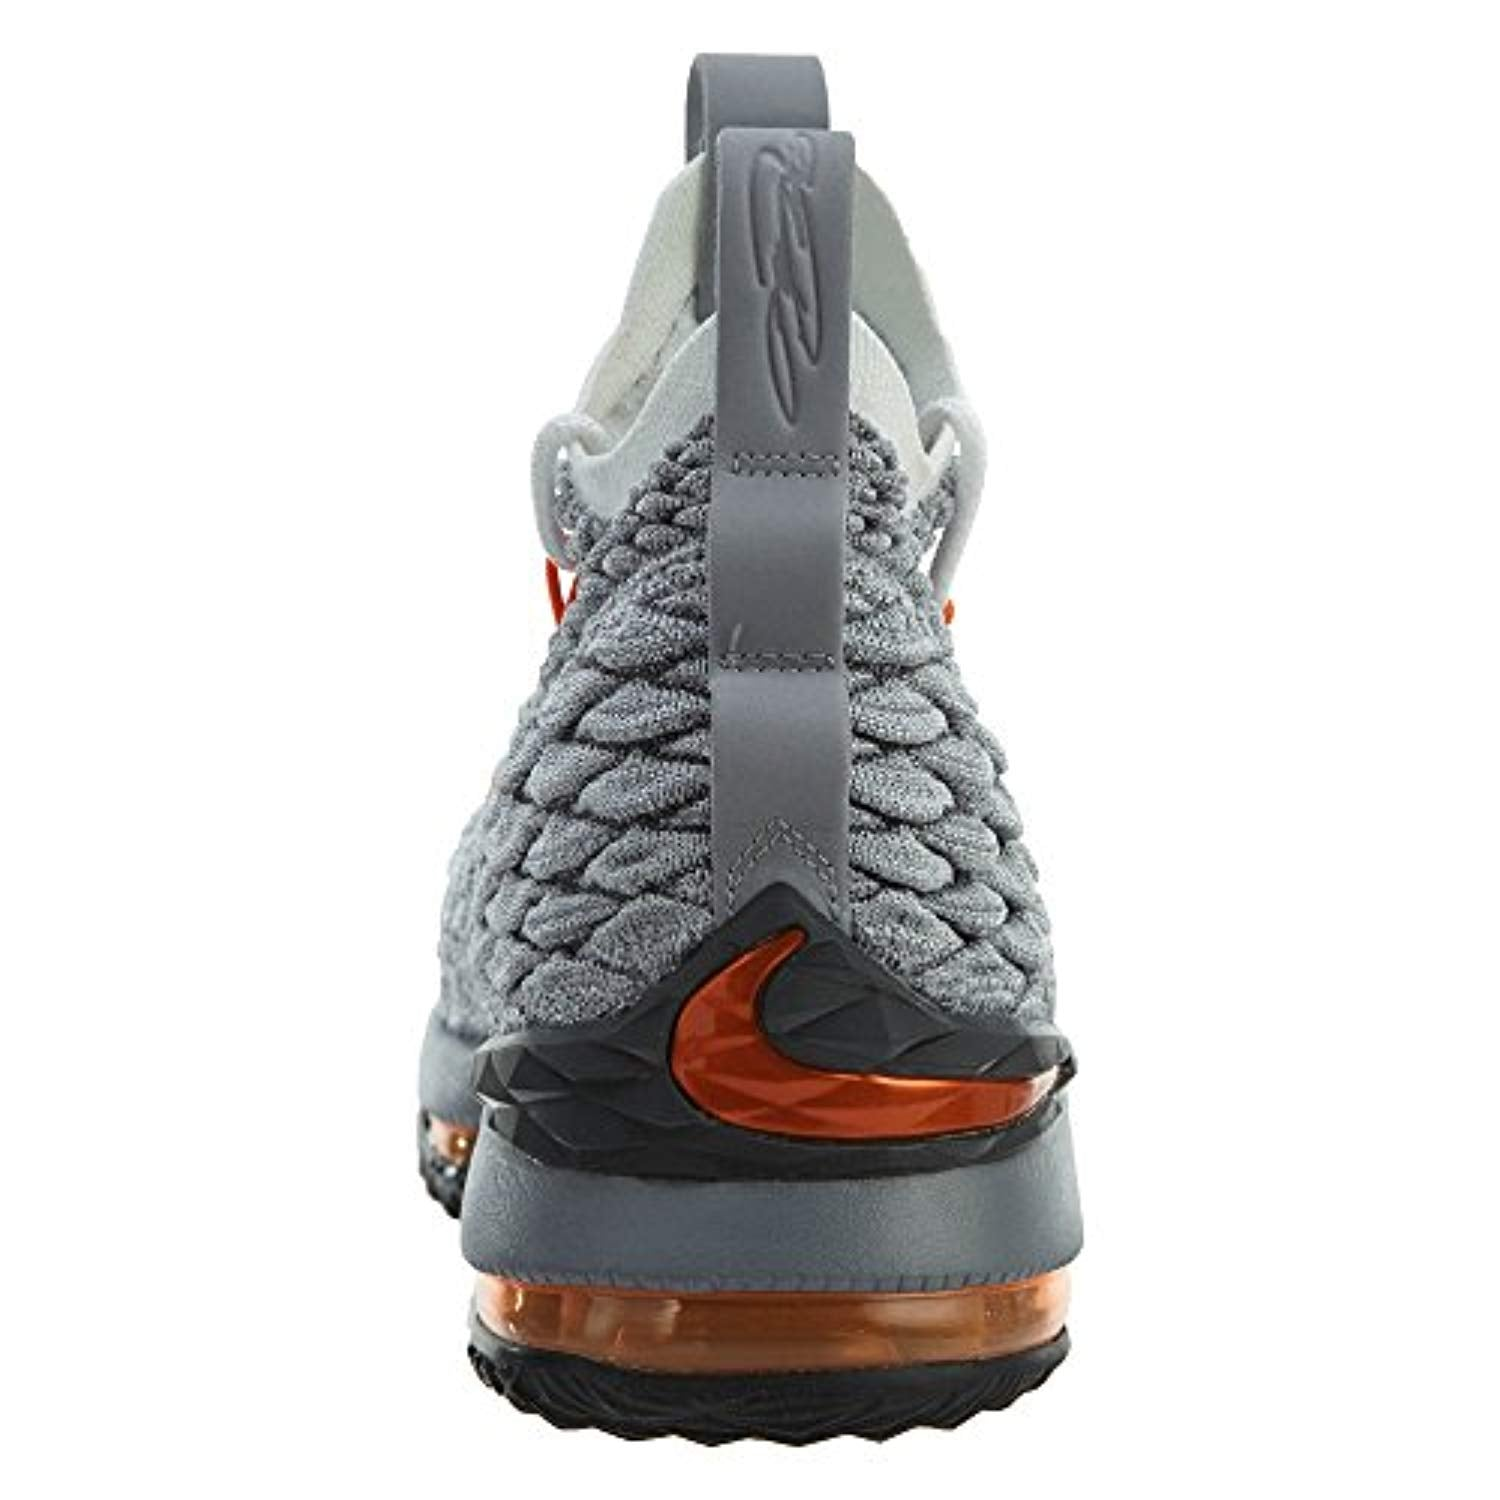 e57dc54139a 319 NIKE Youth Lebron 15 Boys Basketball Shoes Black Safety Orange ...